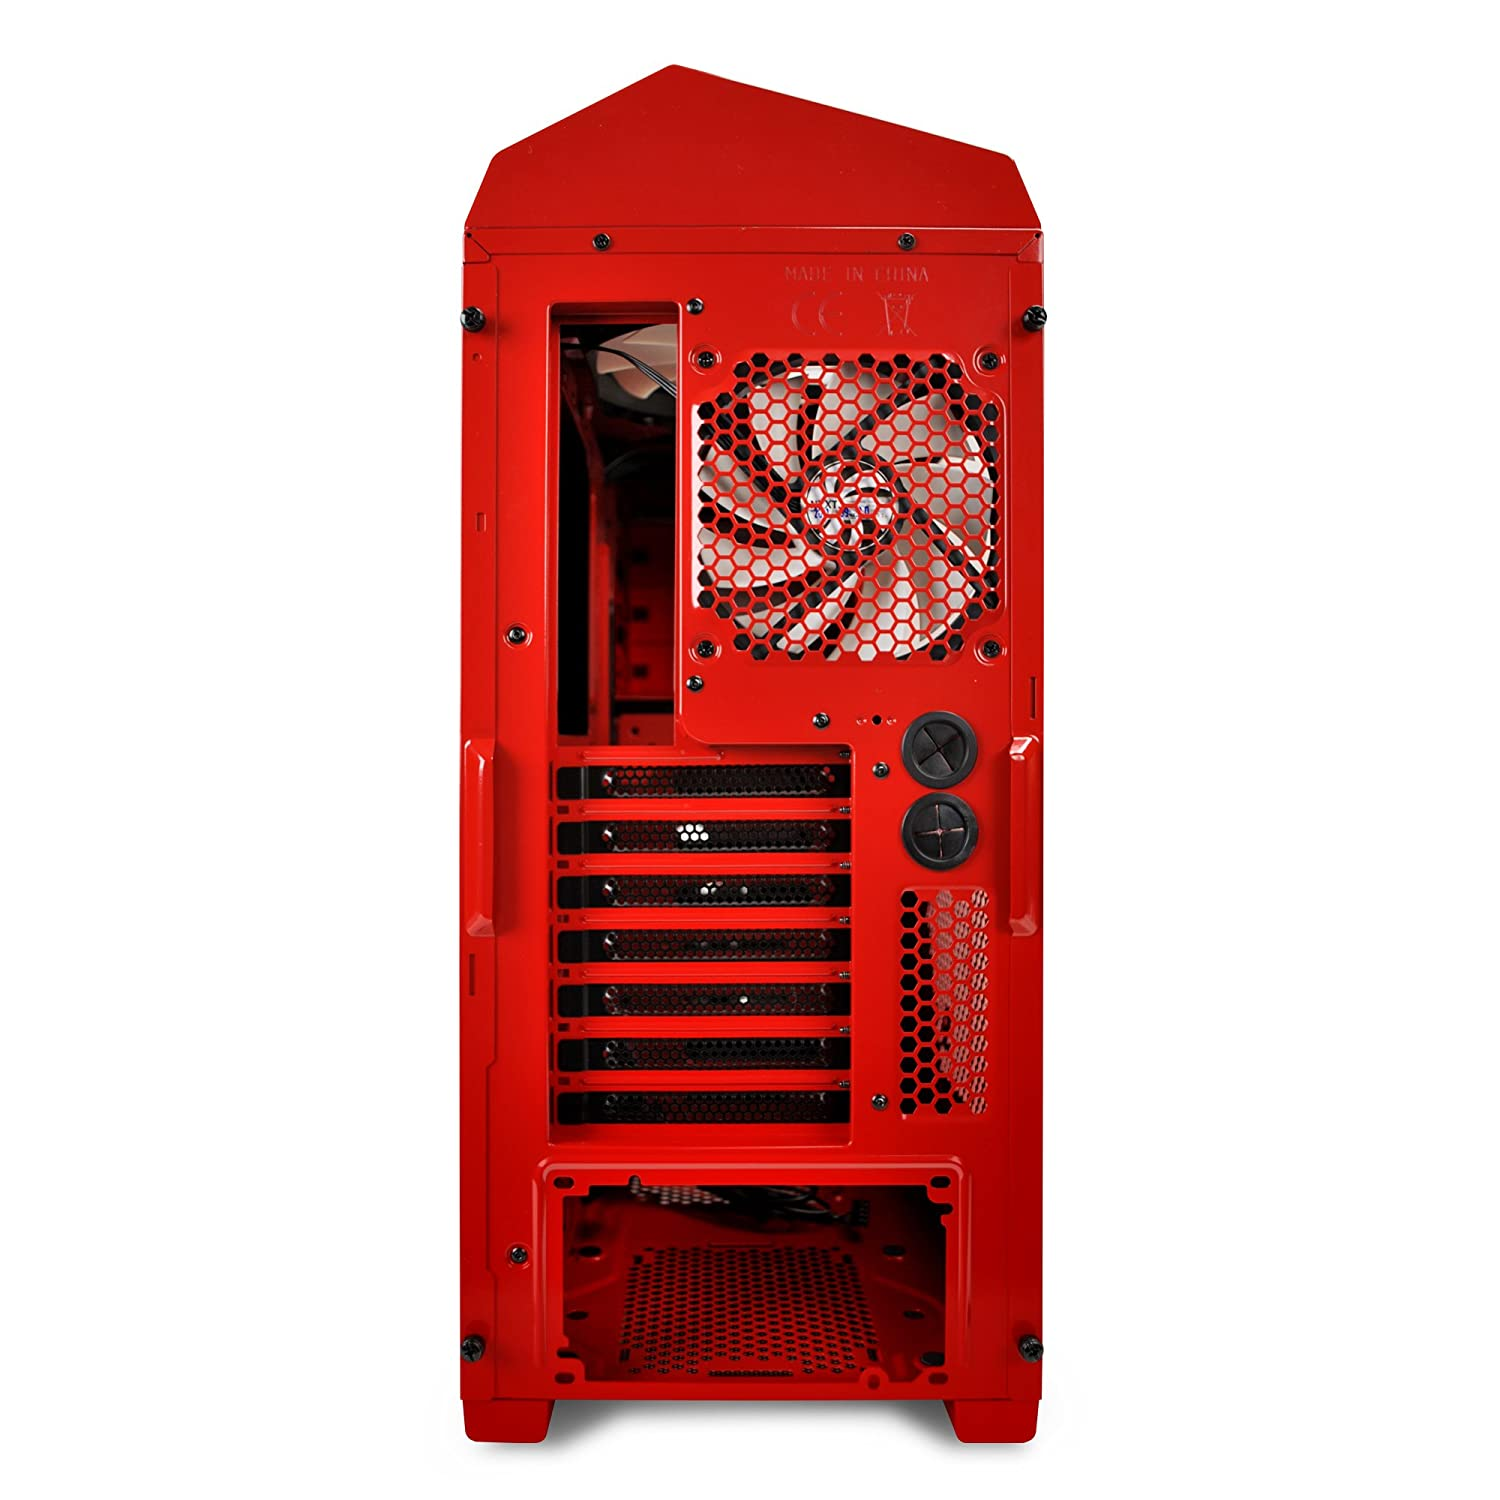 NZXT Phantom 410 Mid Tower USB 3.0 Gaming Case - Red